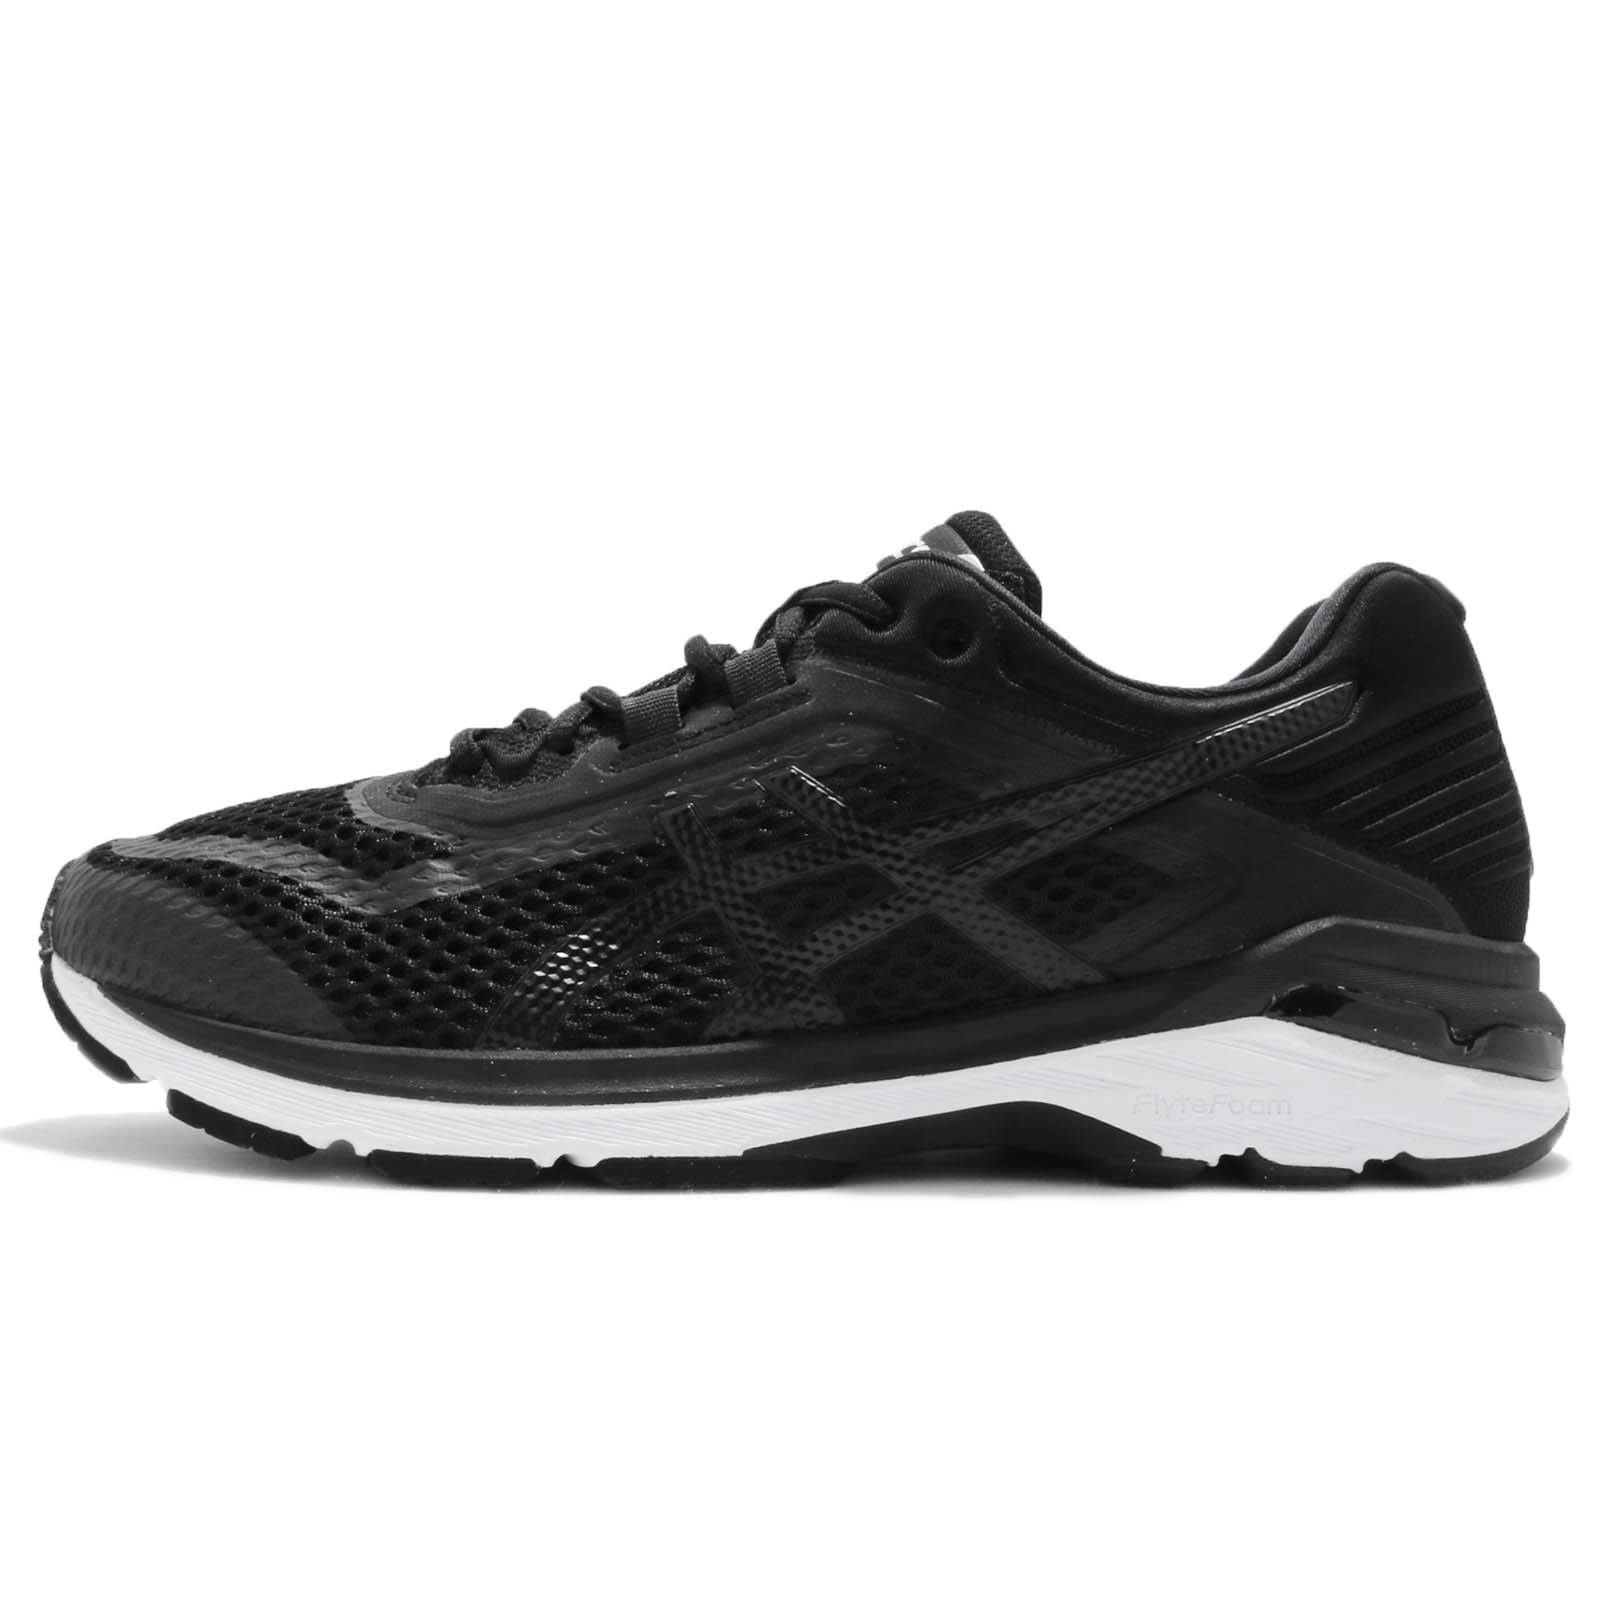 Asics GT 2000 6 Black Carbon Men Gear Road Running Shoes Sneakers T805N 9001